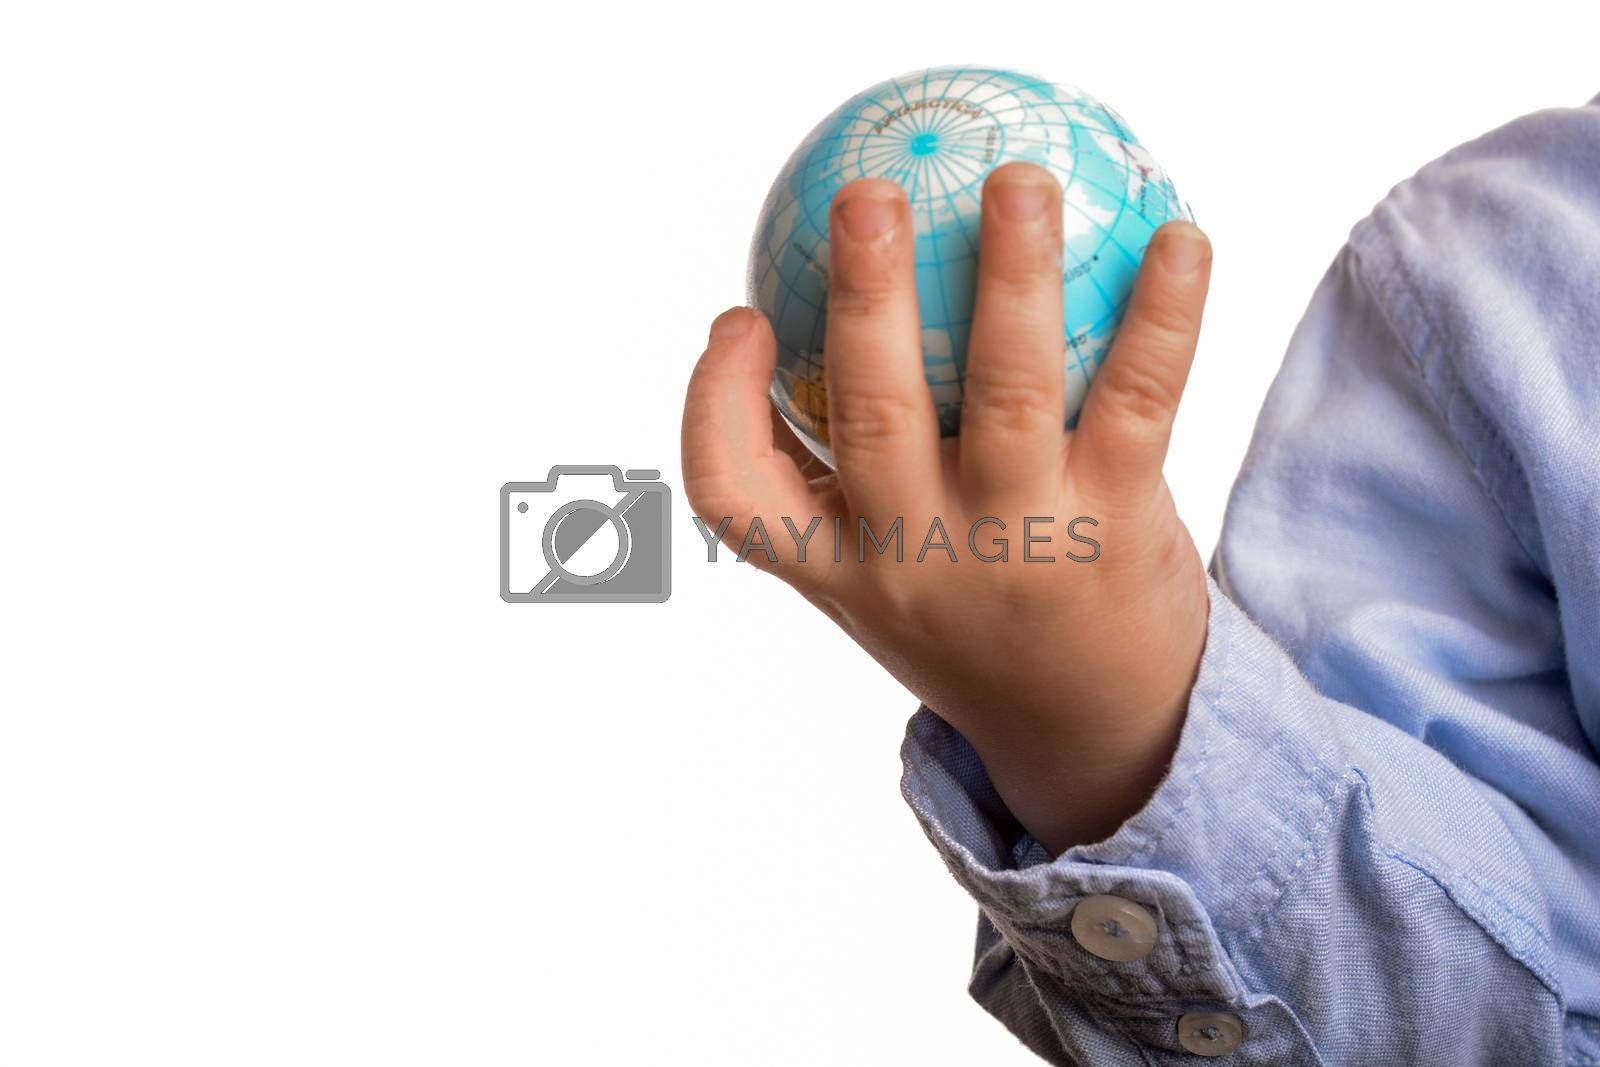 Baby with blue shirt holding a small globe in hand on white background